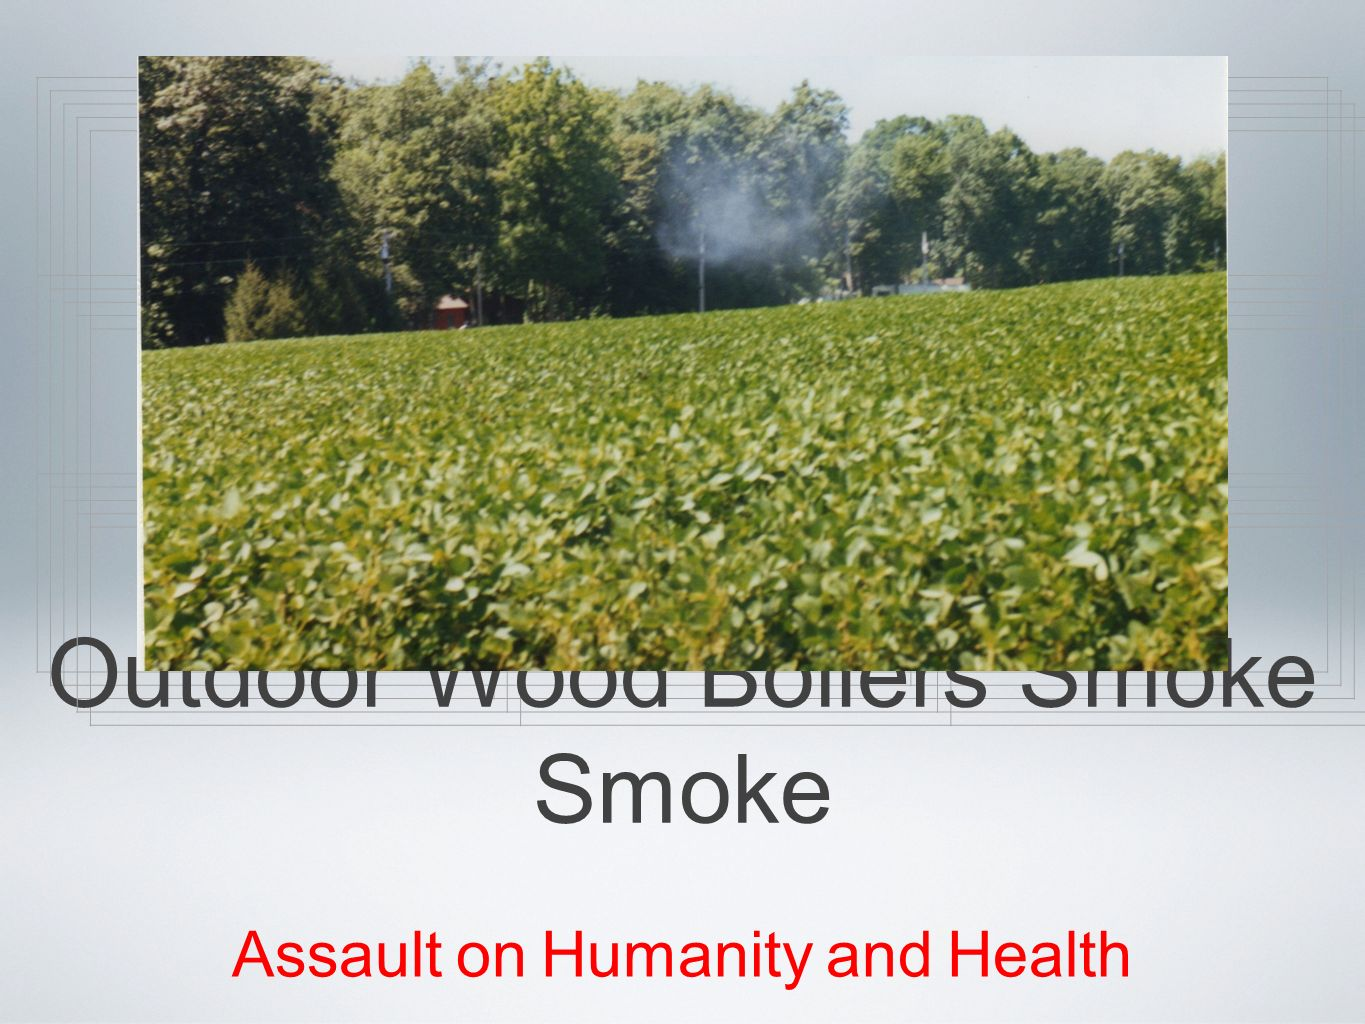 Outdoor Wood Boilers Smoke Smoke Assault on Humanity and Health Text